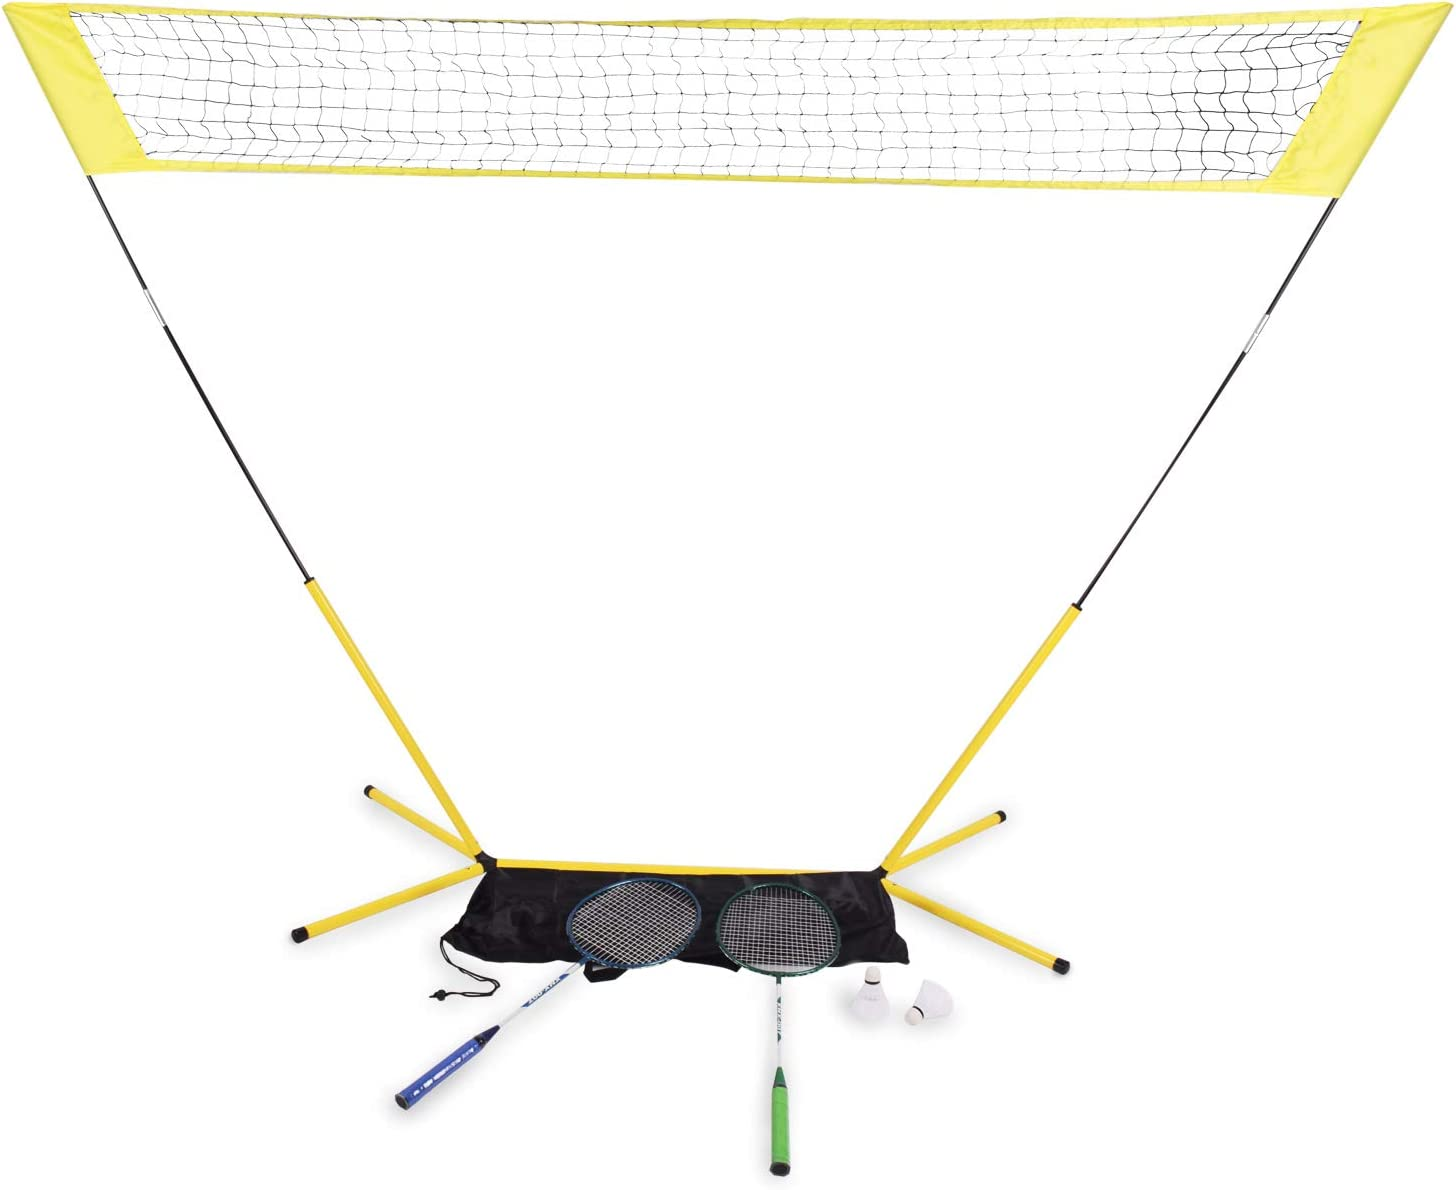 Including 1 Net 2 Rackets 2 Shuttlecocks and 1 Carrying Bag Portable Badminton Net with Stand DRM 3 in 1 Complete Badminton Set for Backyards